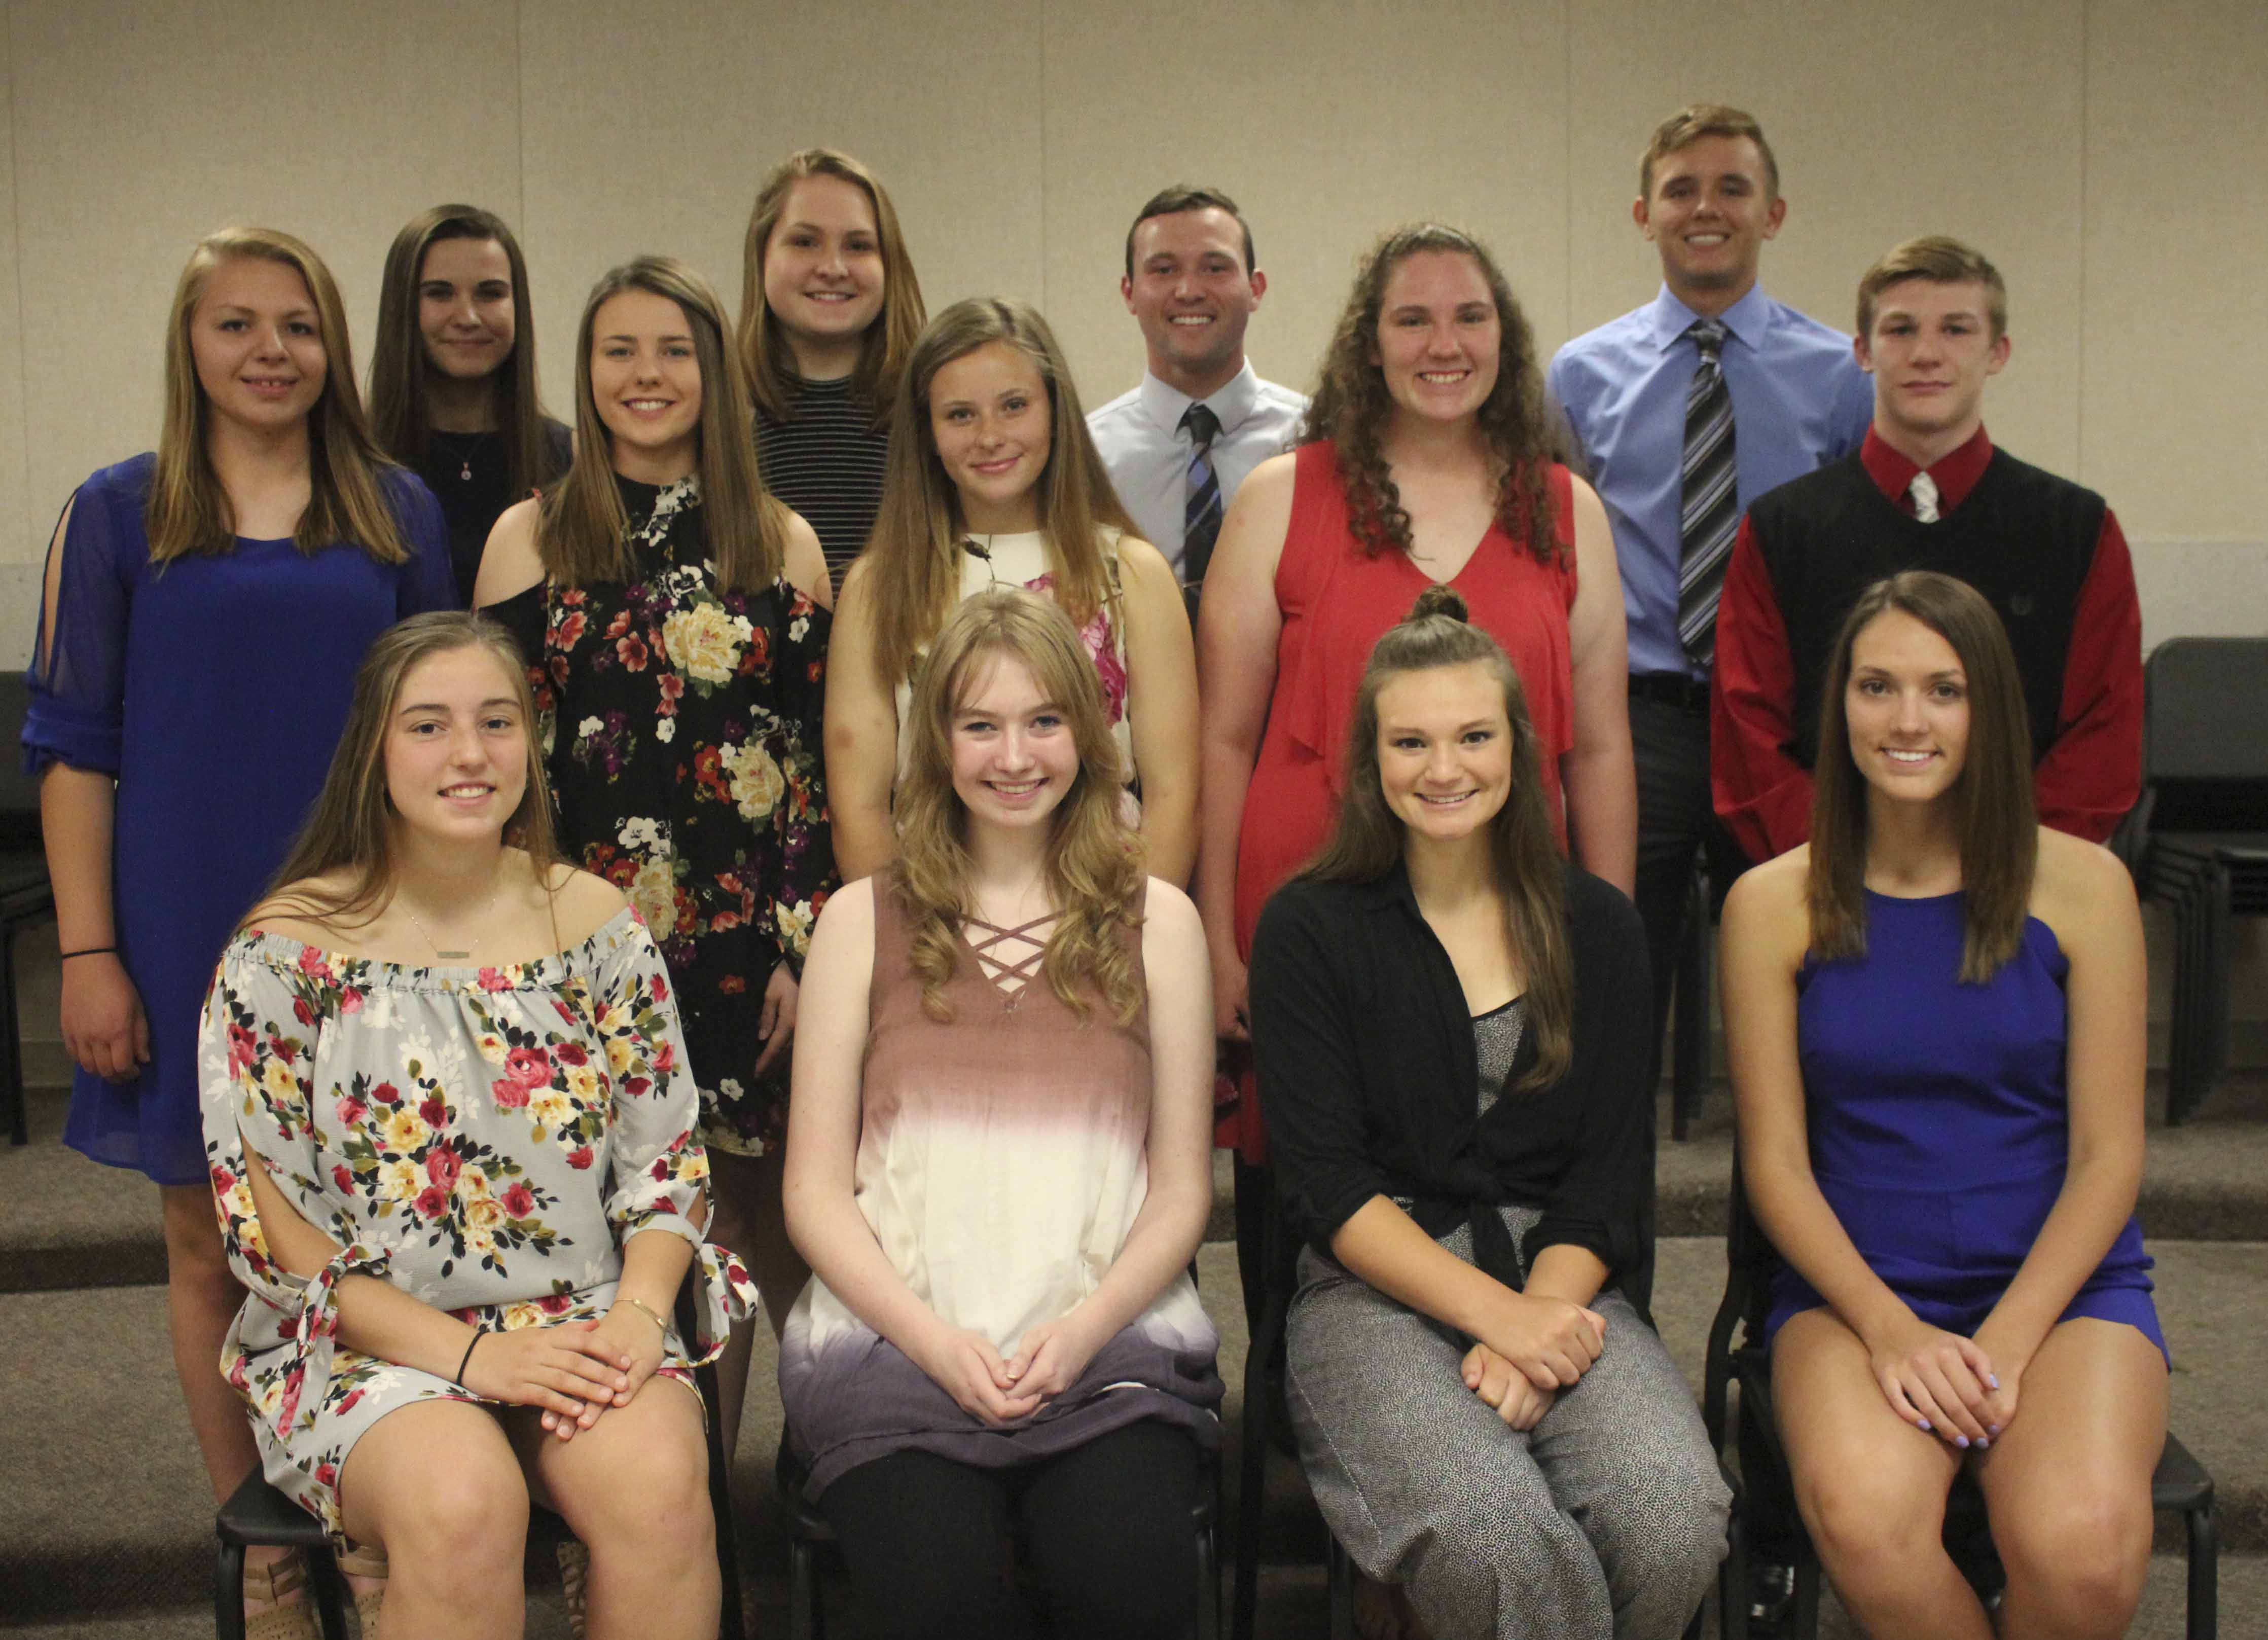 Additional new NHS members, first row from left: Marissa Recker, Presley Tapken, Jaelynn Kraus and Sydney Hansen. Second row: Jordan Lorenzen, Emmi Sampson, Megan James, Marissa McNally and Chase Luensman. Third row: Lilly Lambert, Kenna Melchert, Jonathon Mootz and Avery Martensen.